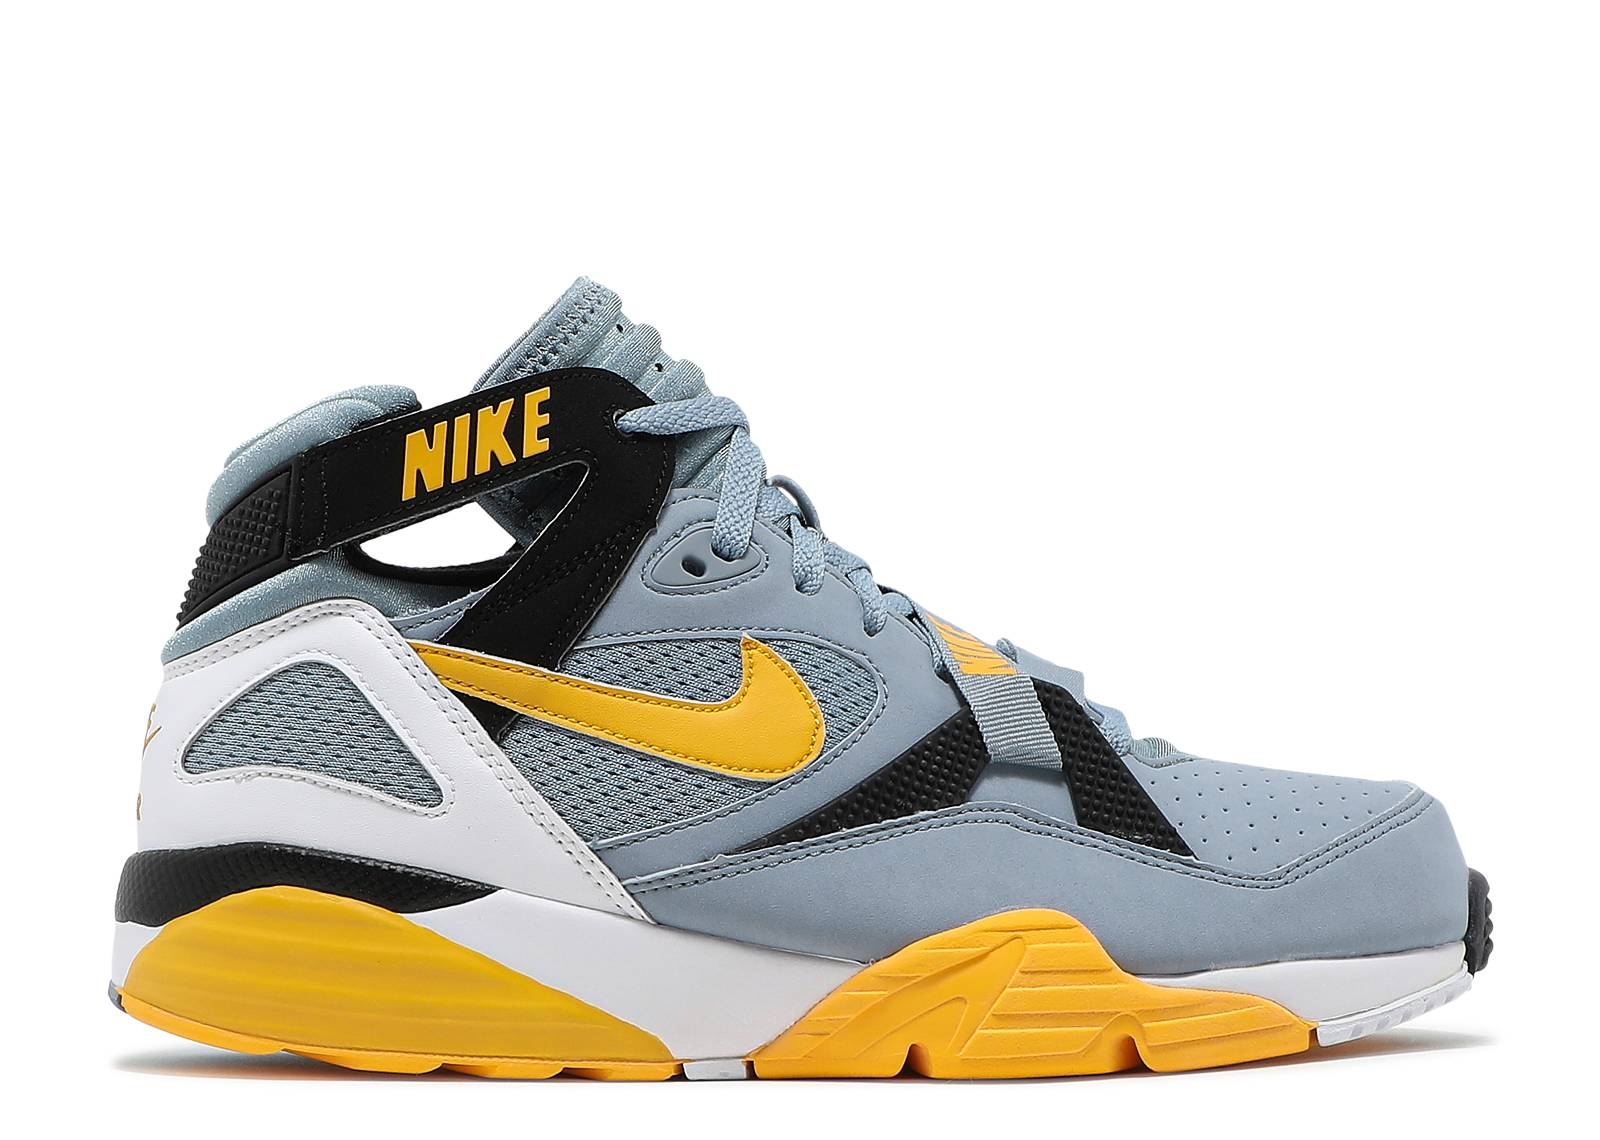 nike air trainer max 91 bo jackson sale